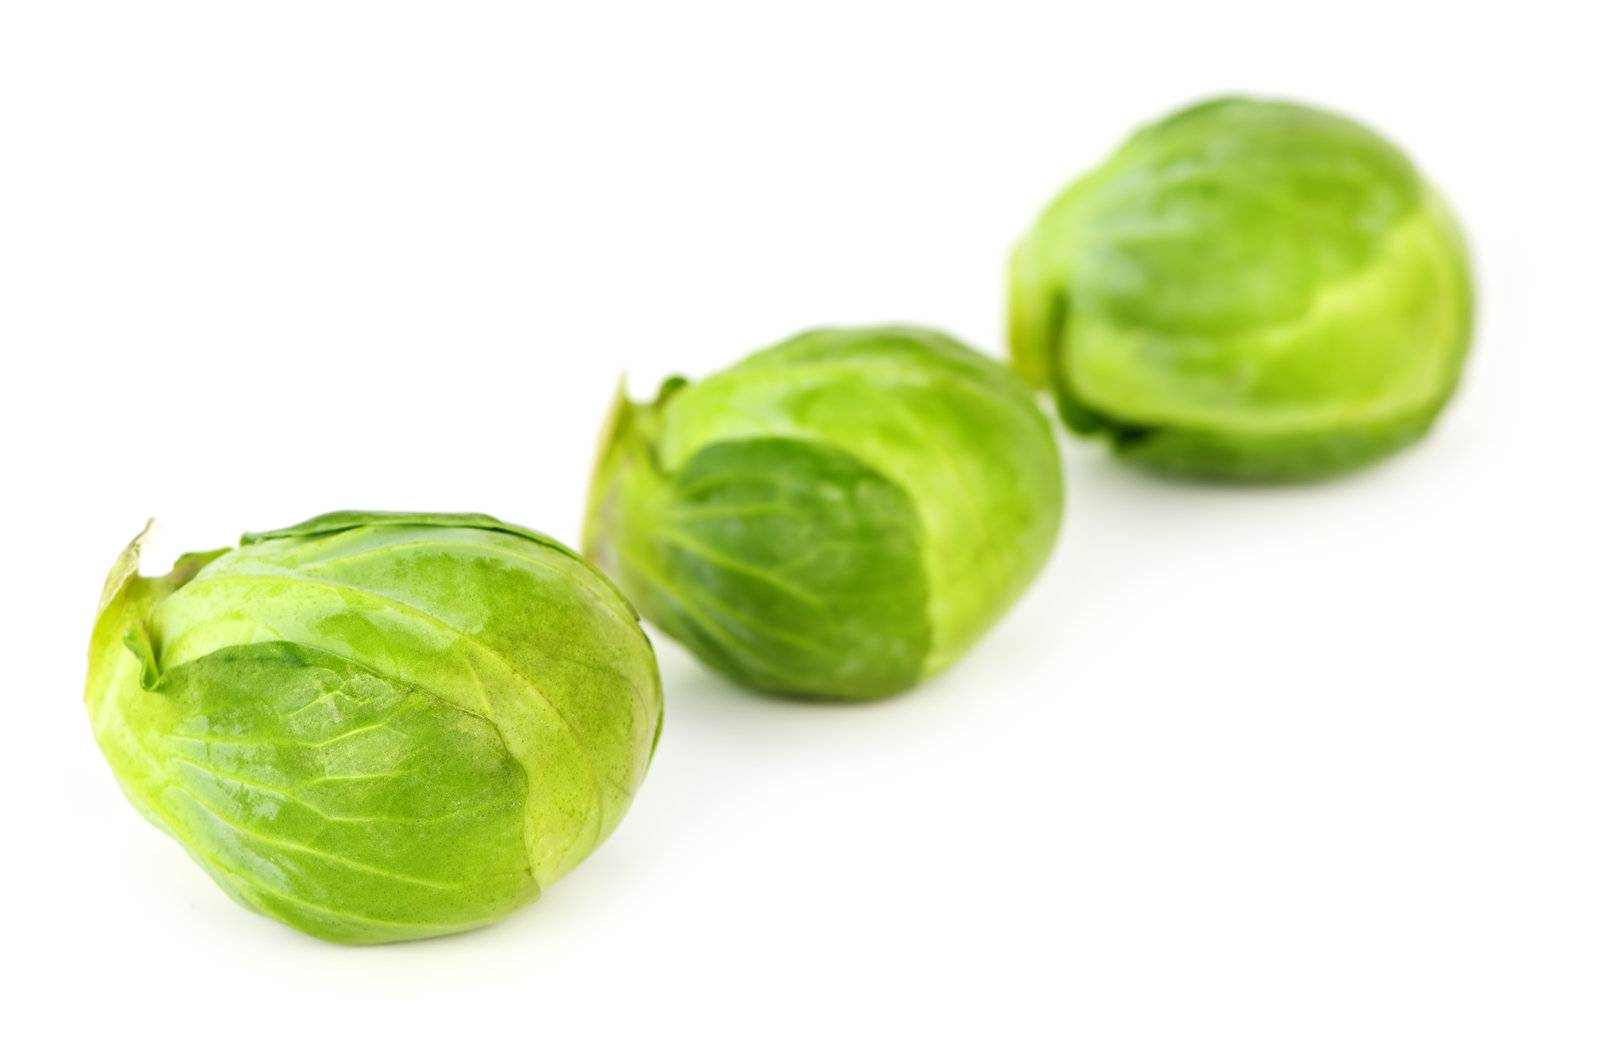 brussels sprouts, brussels, green, sprouts, three, vegetable - D851062